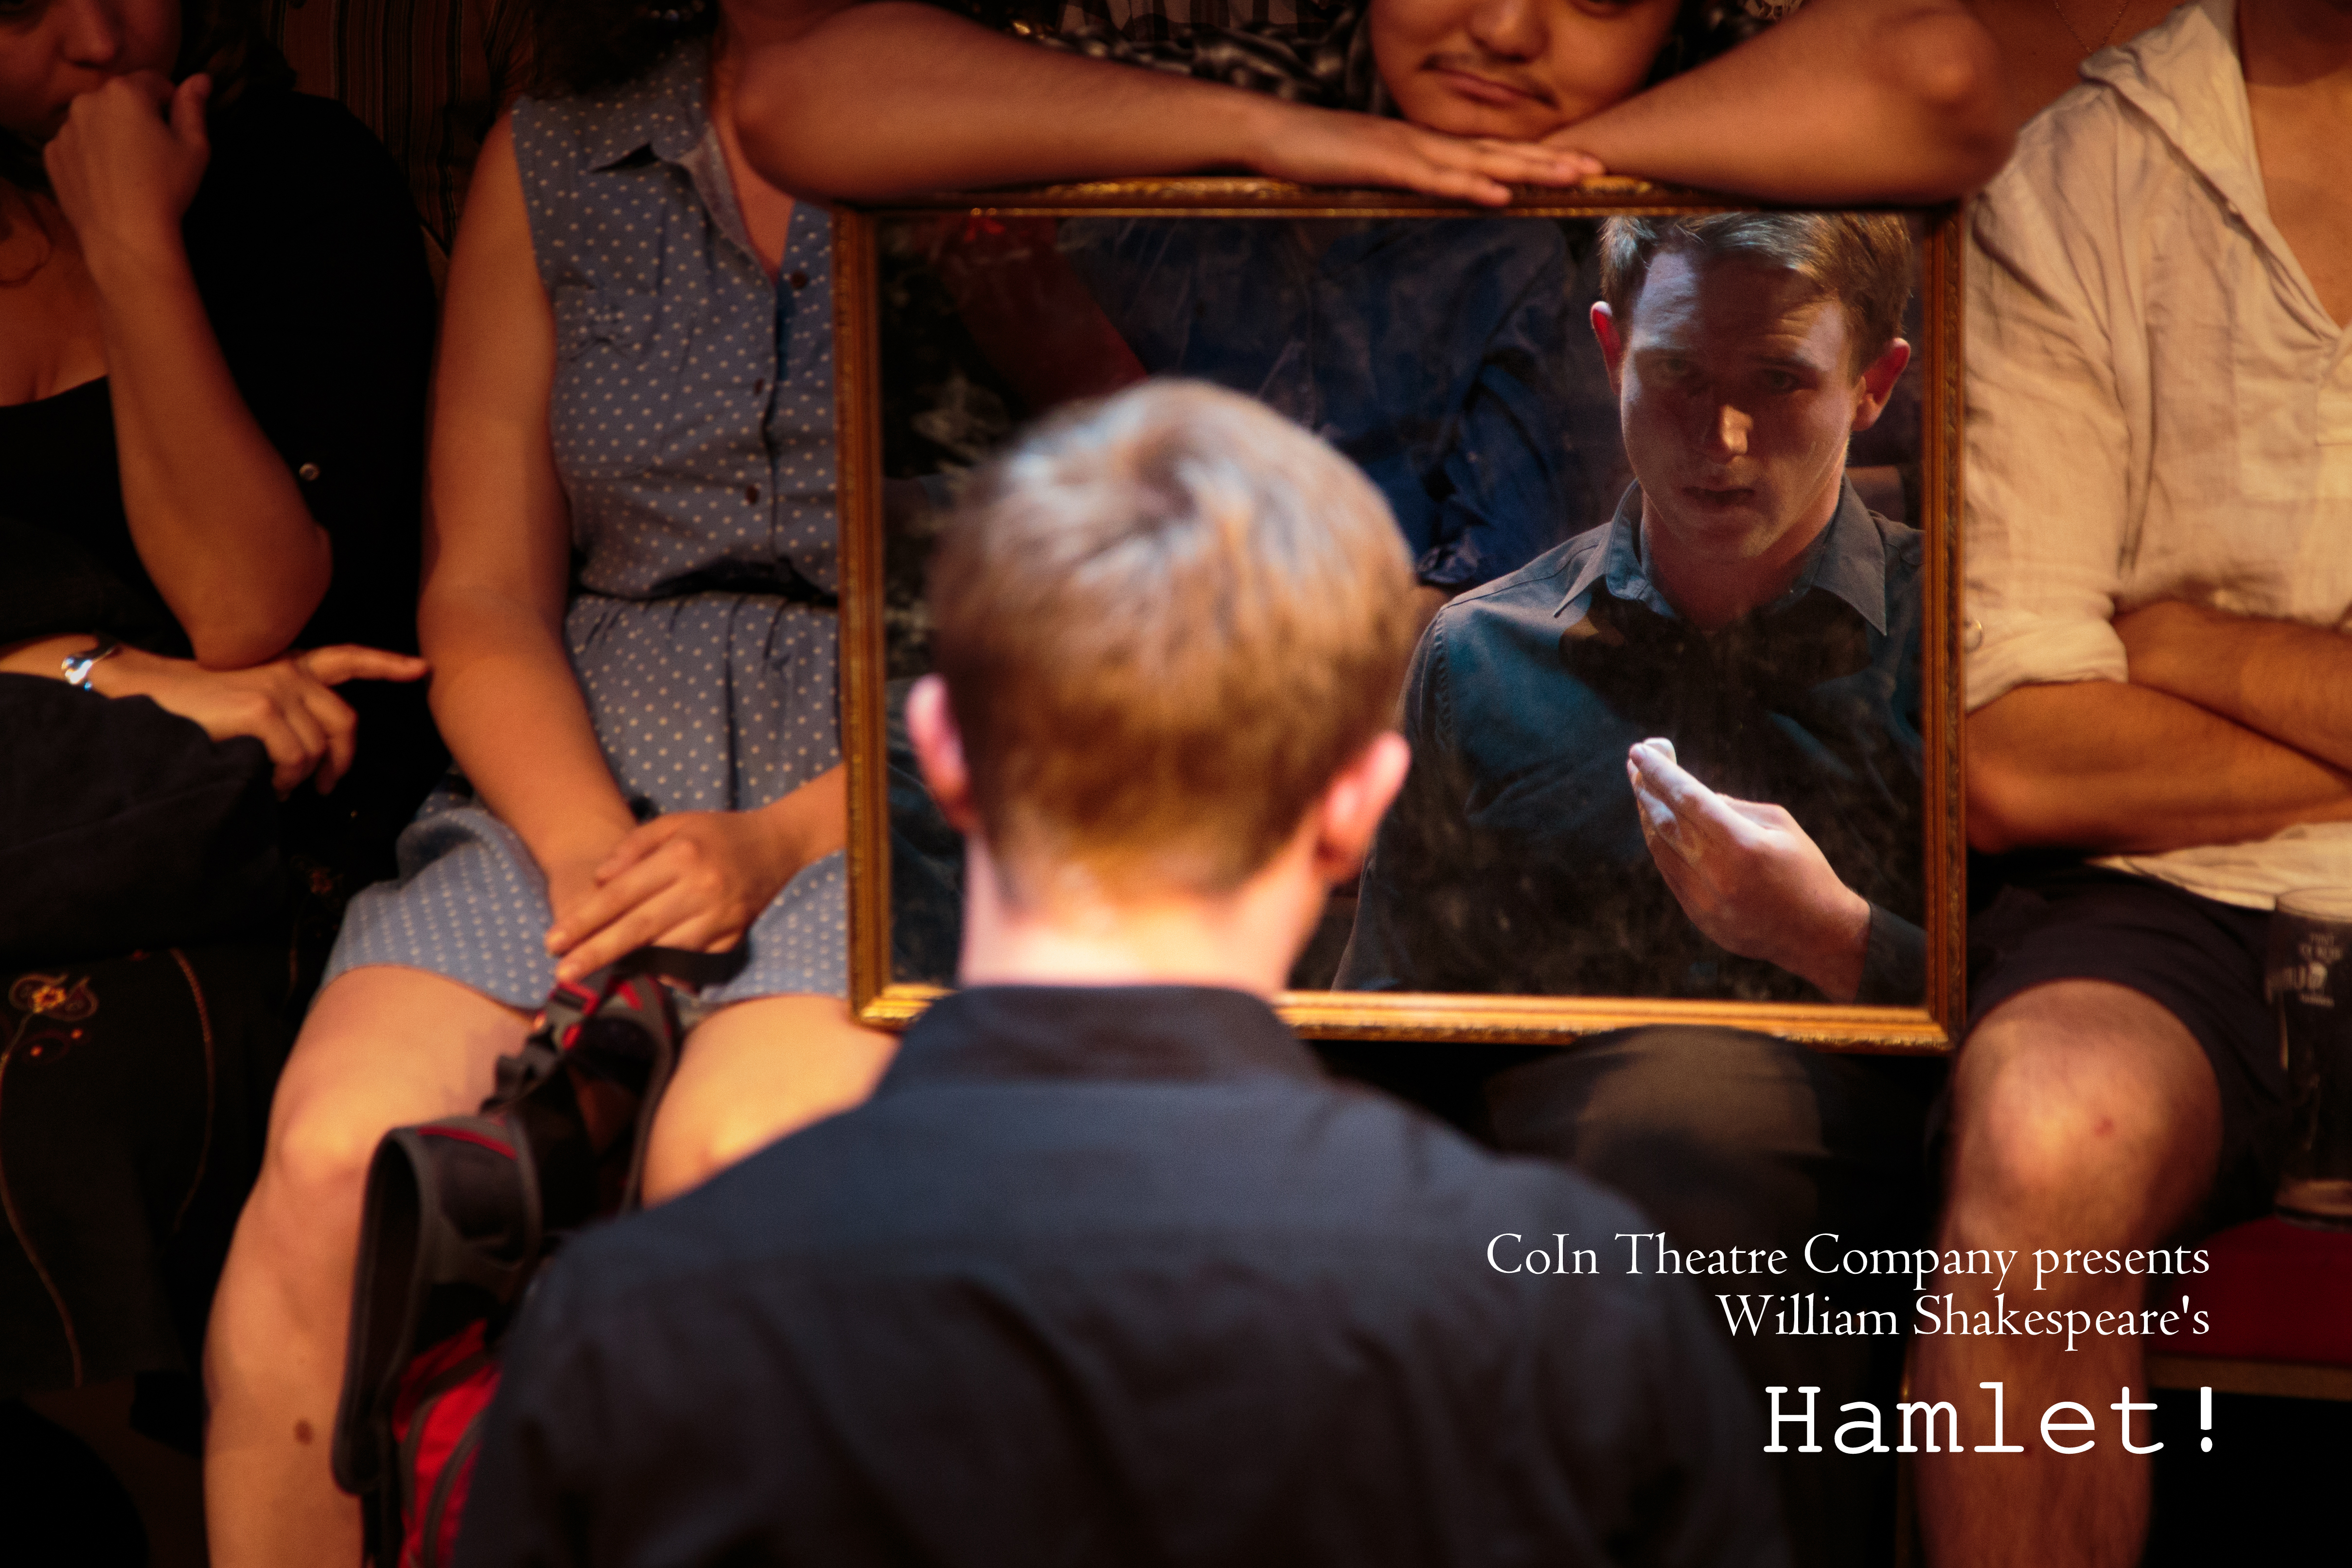 human nature in hamlet and a The play, hamlet, by william shakespeare, shows human nature to be greedy, self-involved and vengeful claudius is driven by his greed to commit murder polonius is always looking out for himself, currying favor at the expense of anyone in his way hamlet thinks only of vengeance from the moment he .